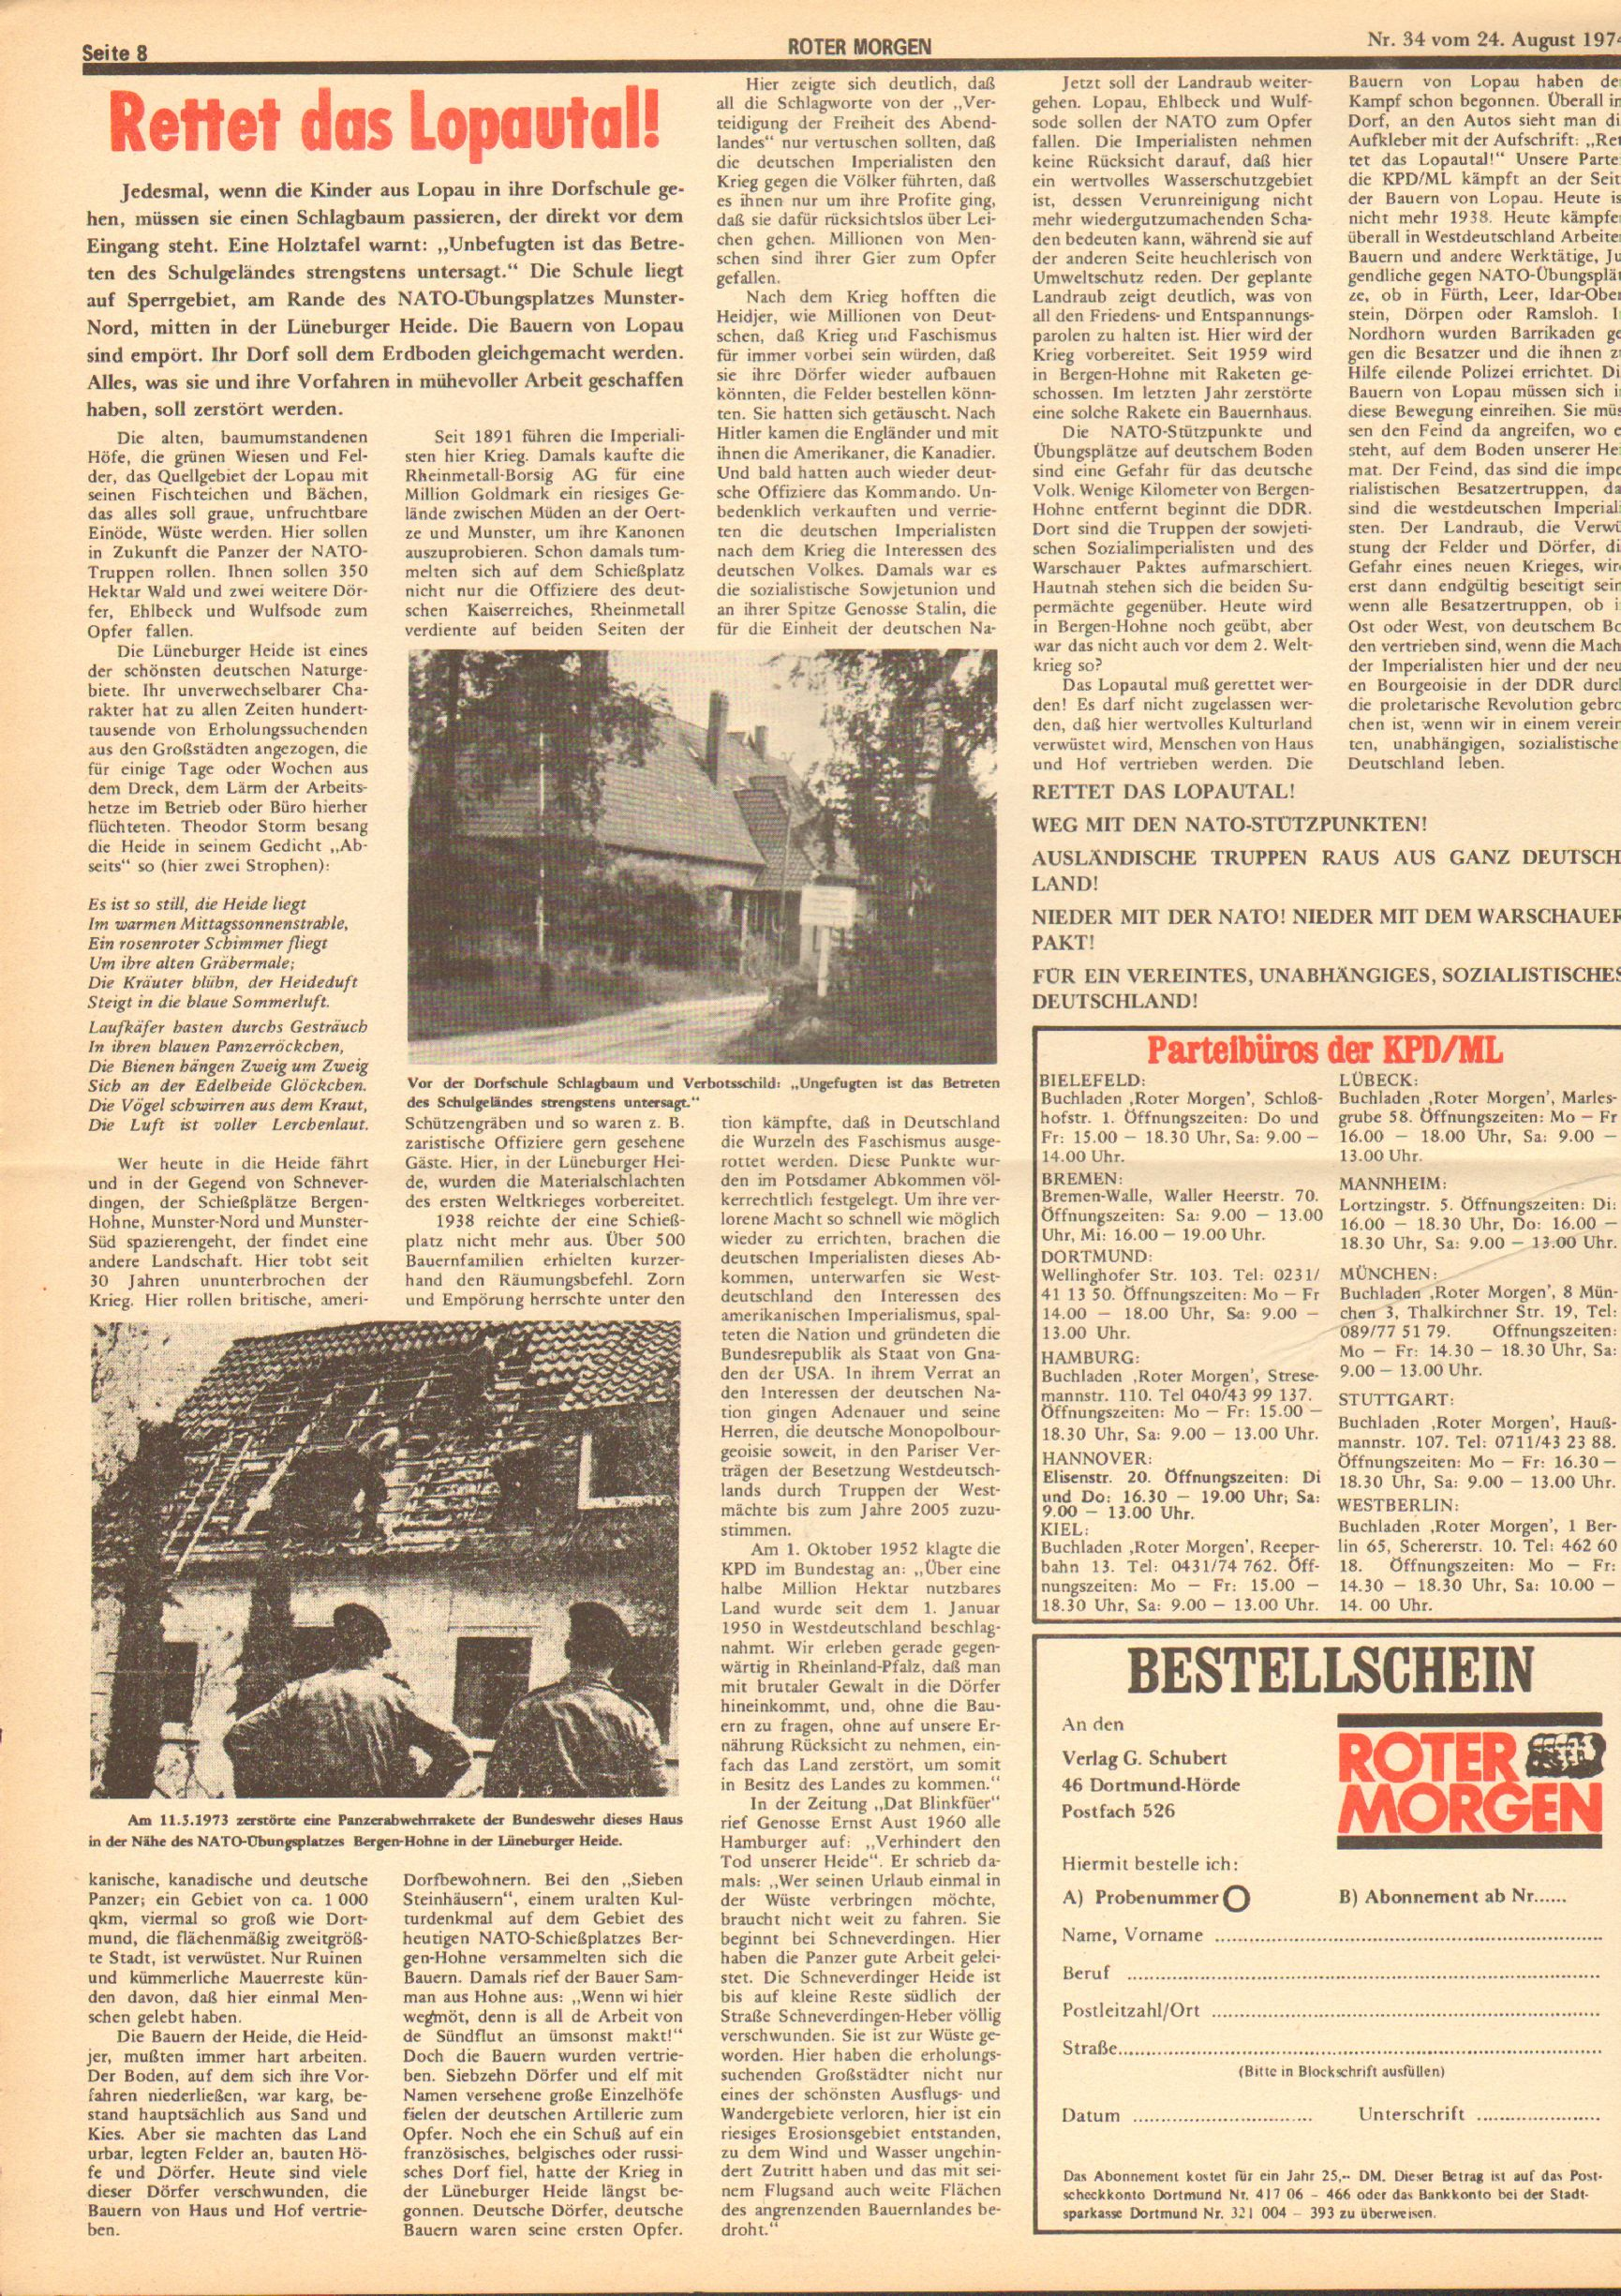 Roter Morgen, 8. Jg., 24. August 1974, Nr. 34, Seite 8